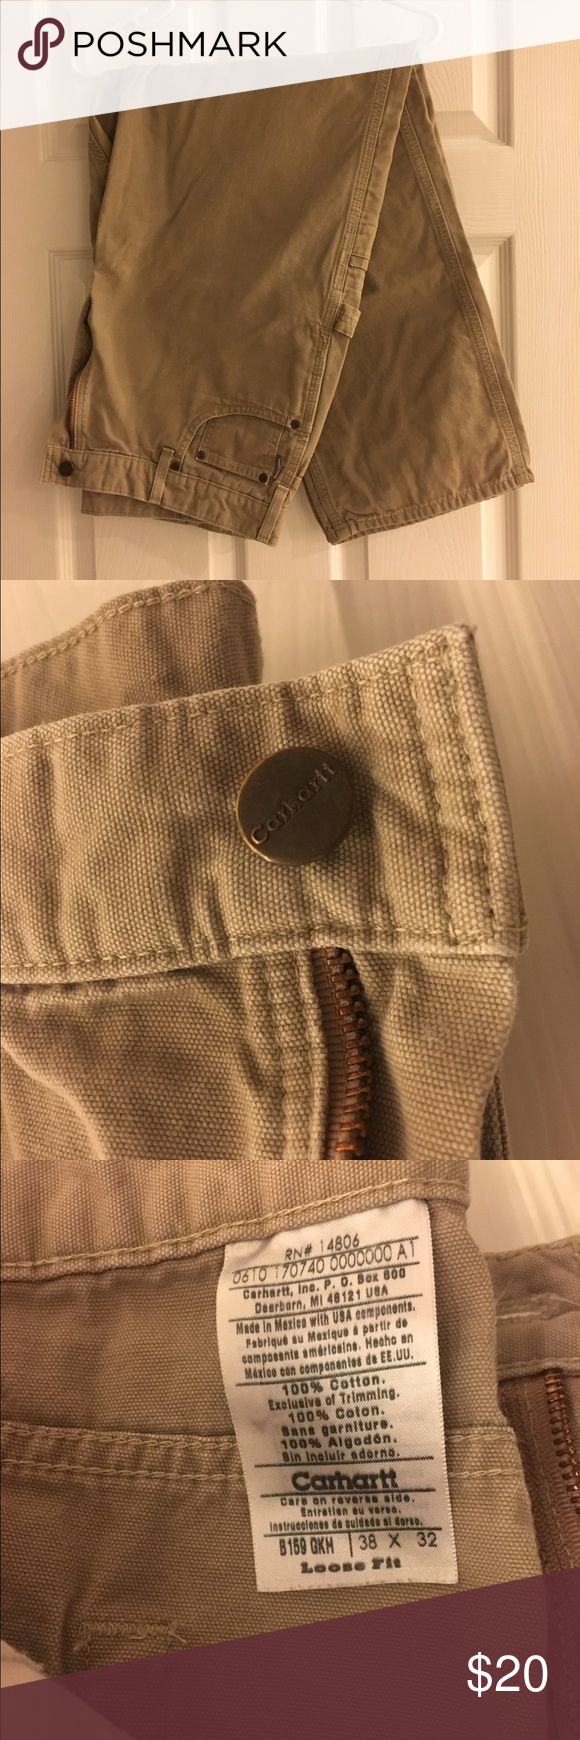 Mens Carhartt Carpenter Work Pants Mens Carhartt Carpenter Work Pants, 38/32, worn a few times in great condition. Carhartt Pants